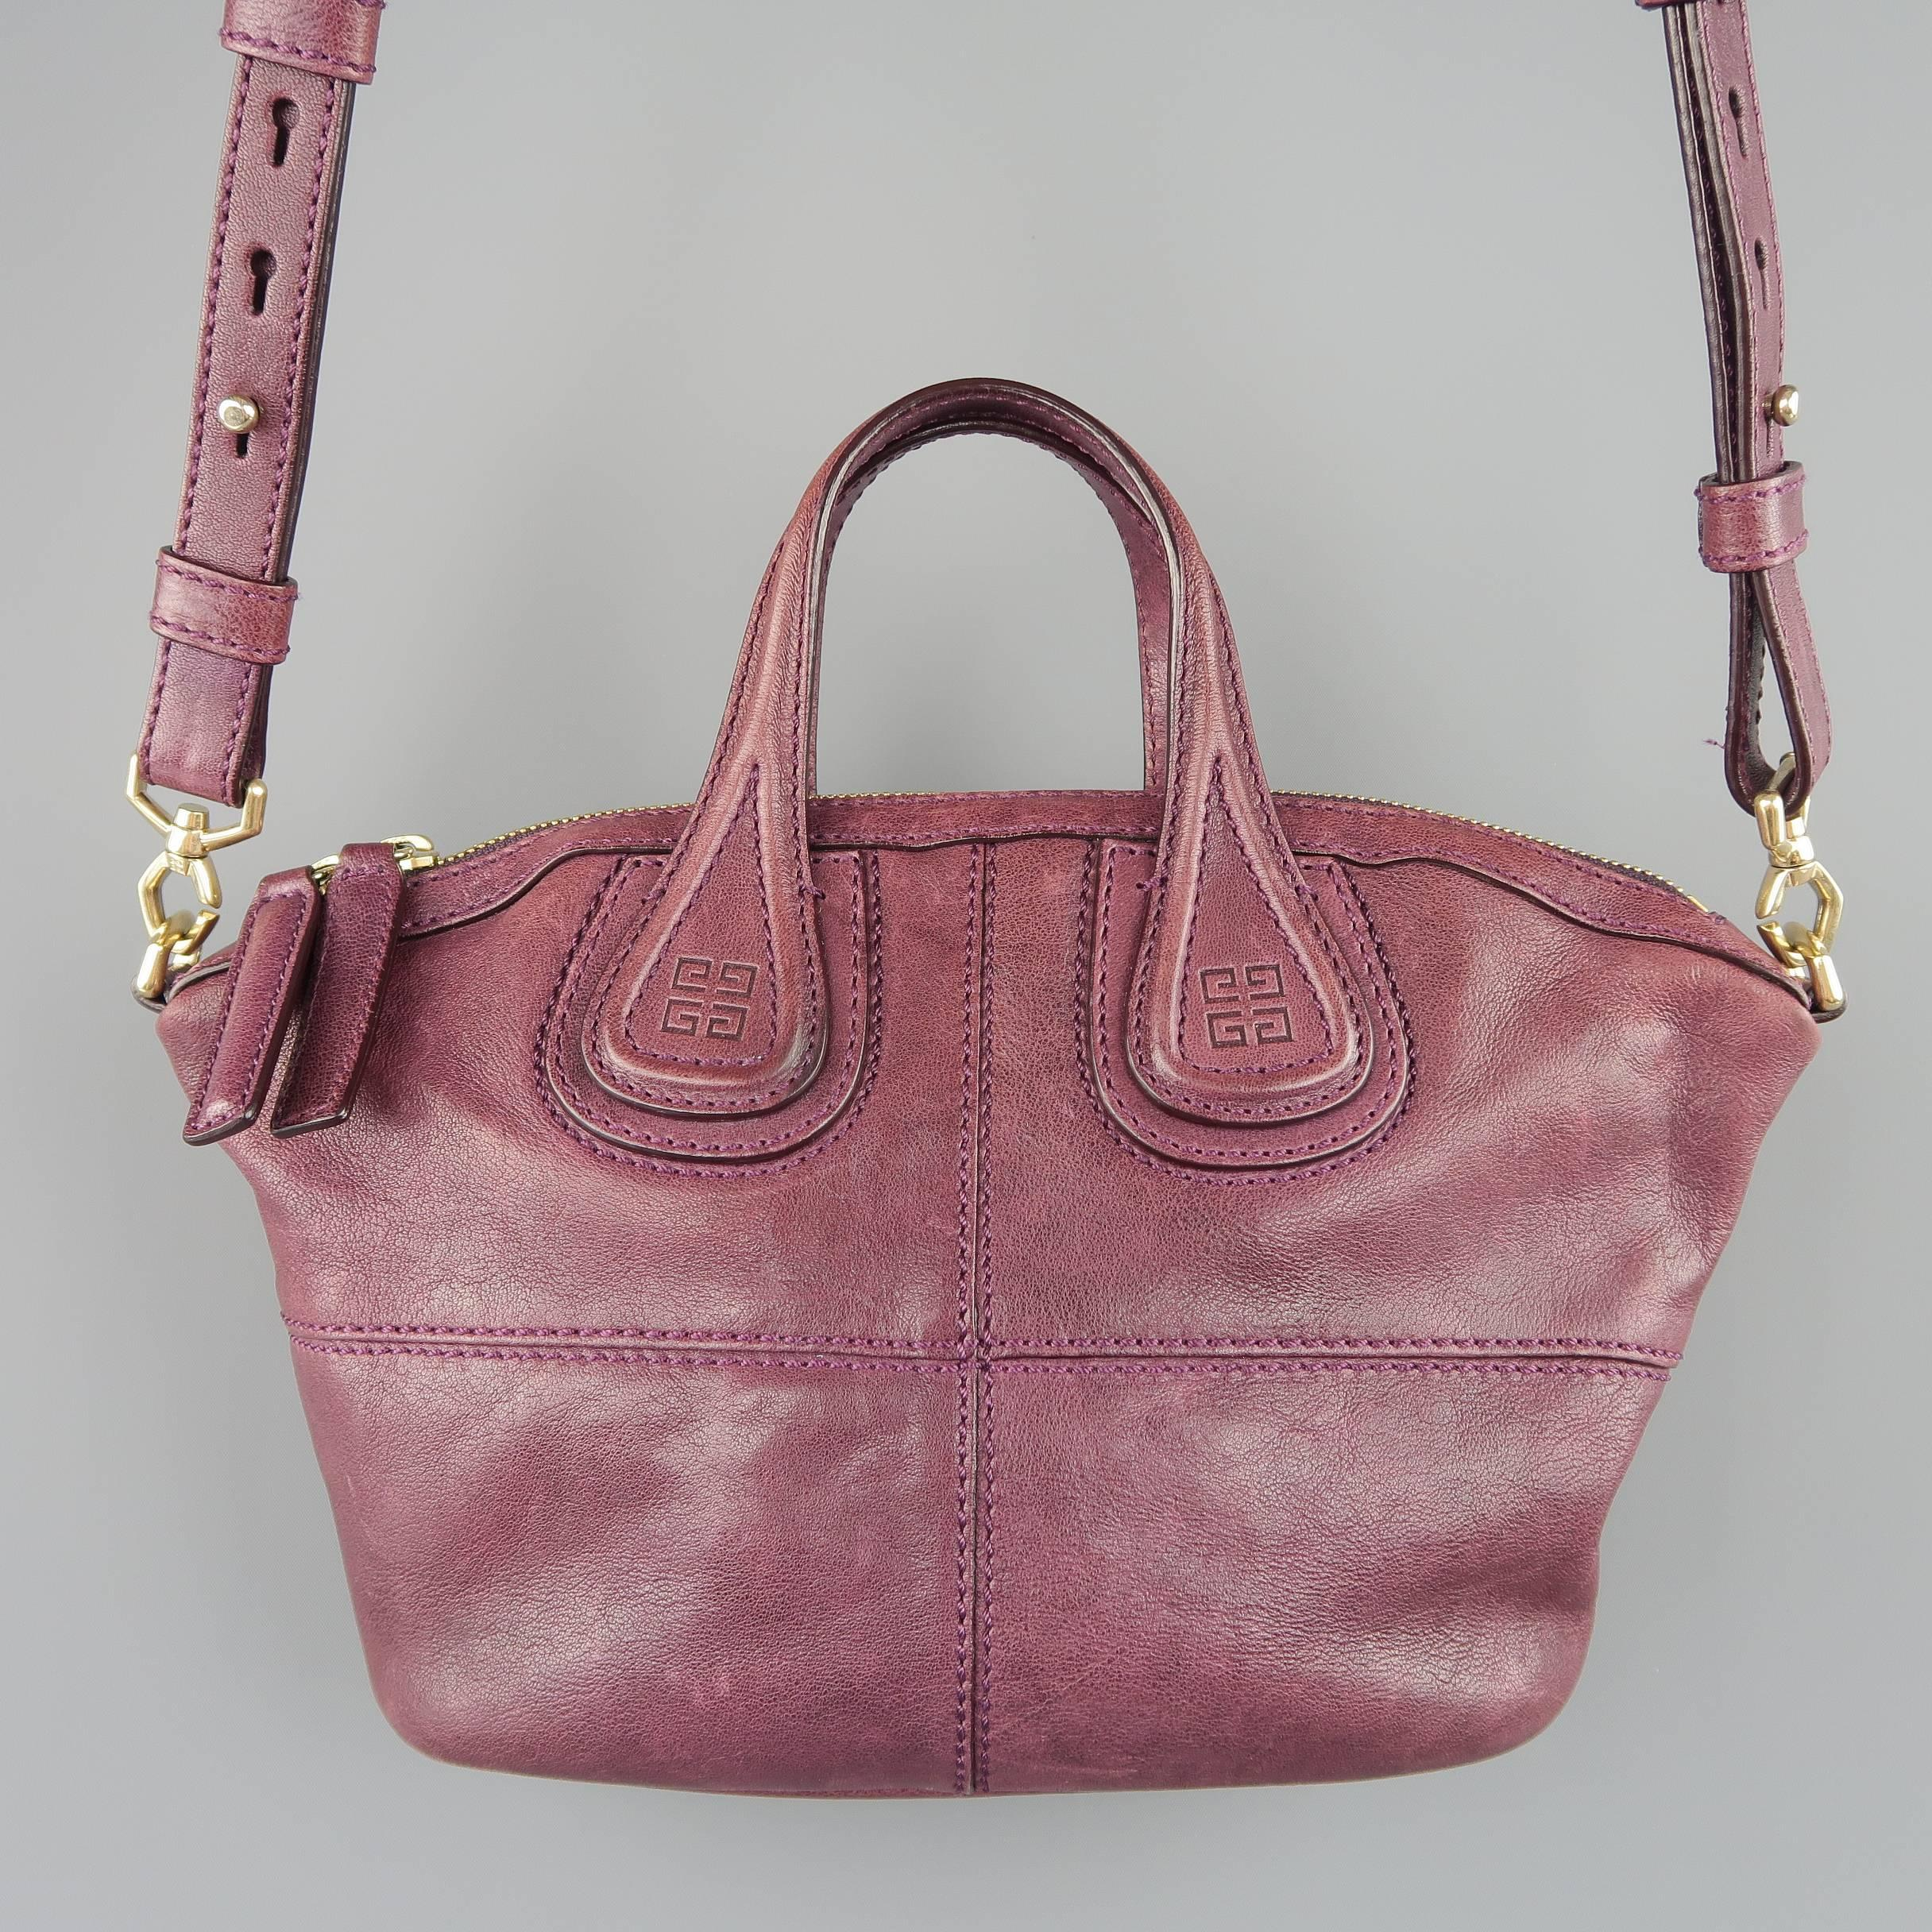 505c7e7b2c Givenchy Plum Purple Leather Nightingale Mini Handbag at 1stdibs